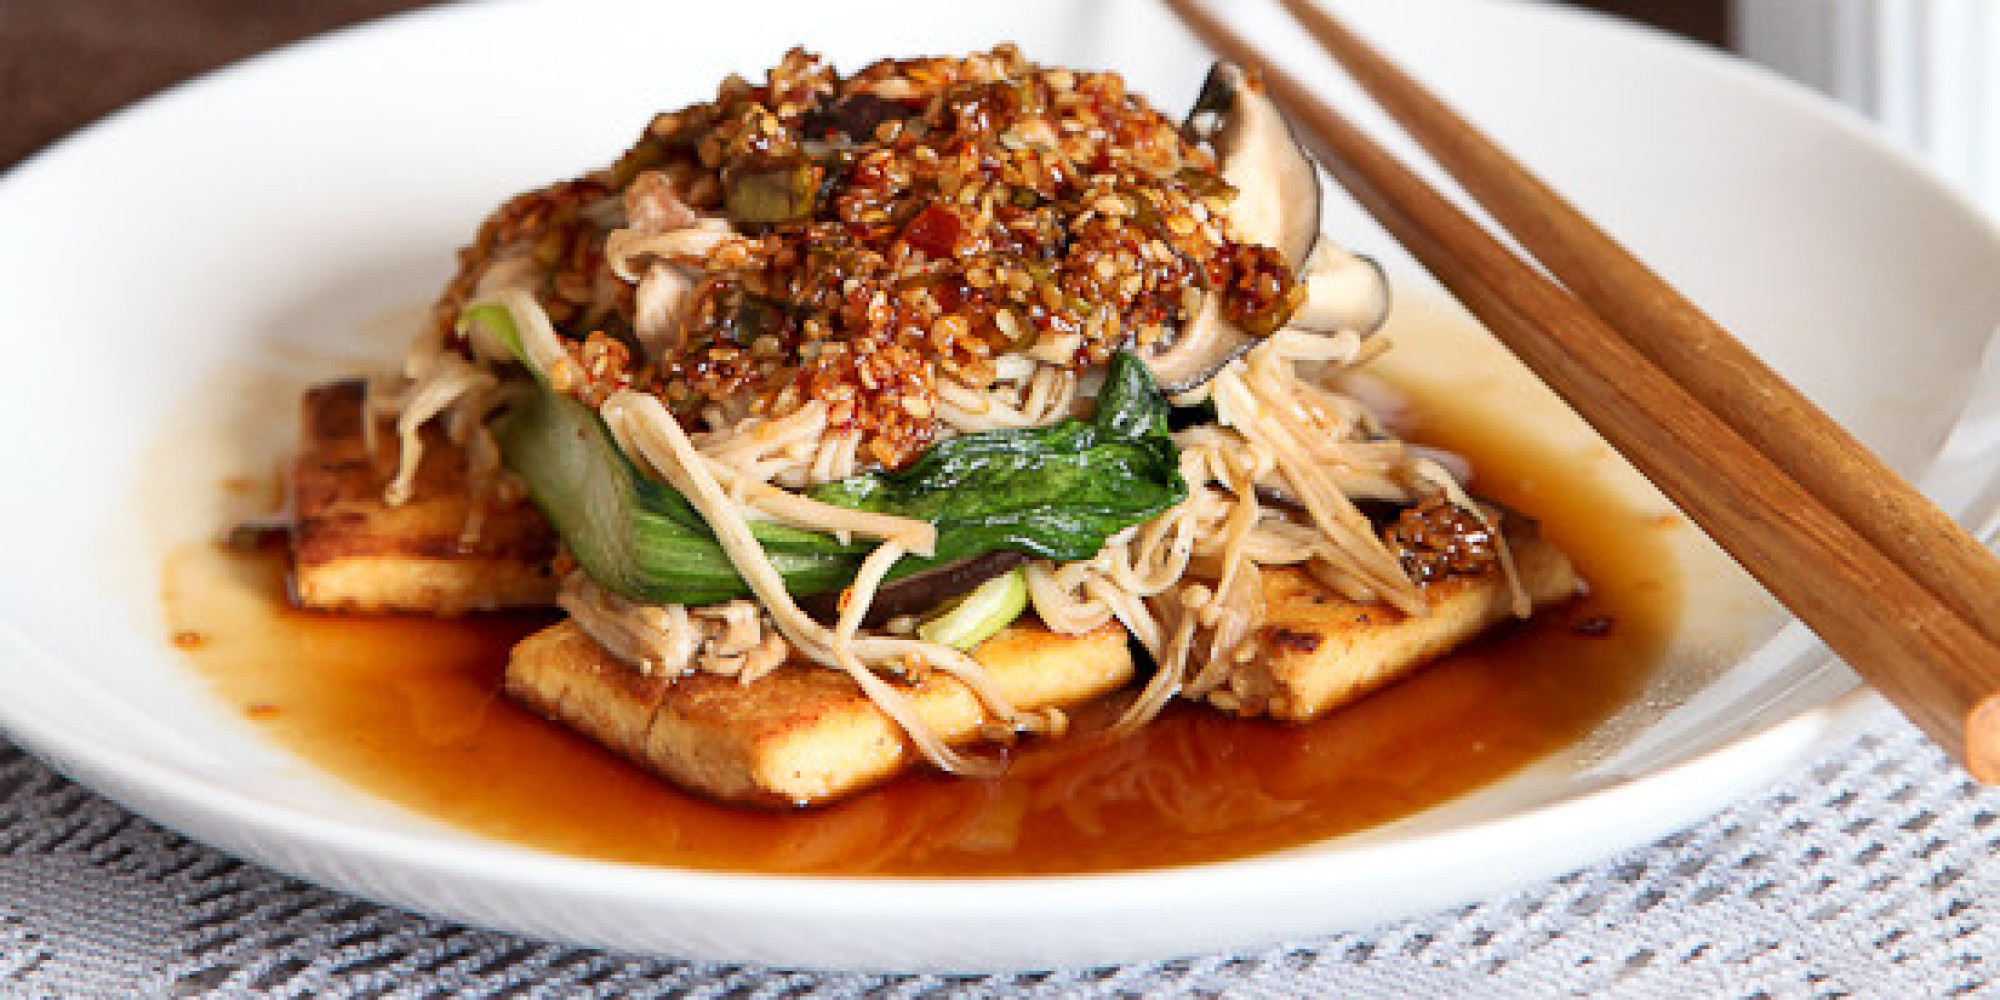 Delicious Tofu Recipes  Tofu Recipes Everyone Will Want To Eat For Dinner